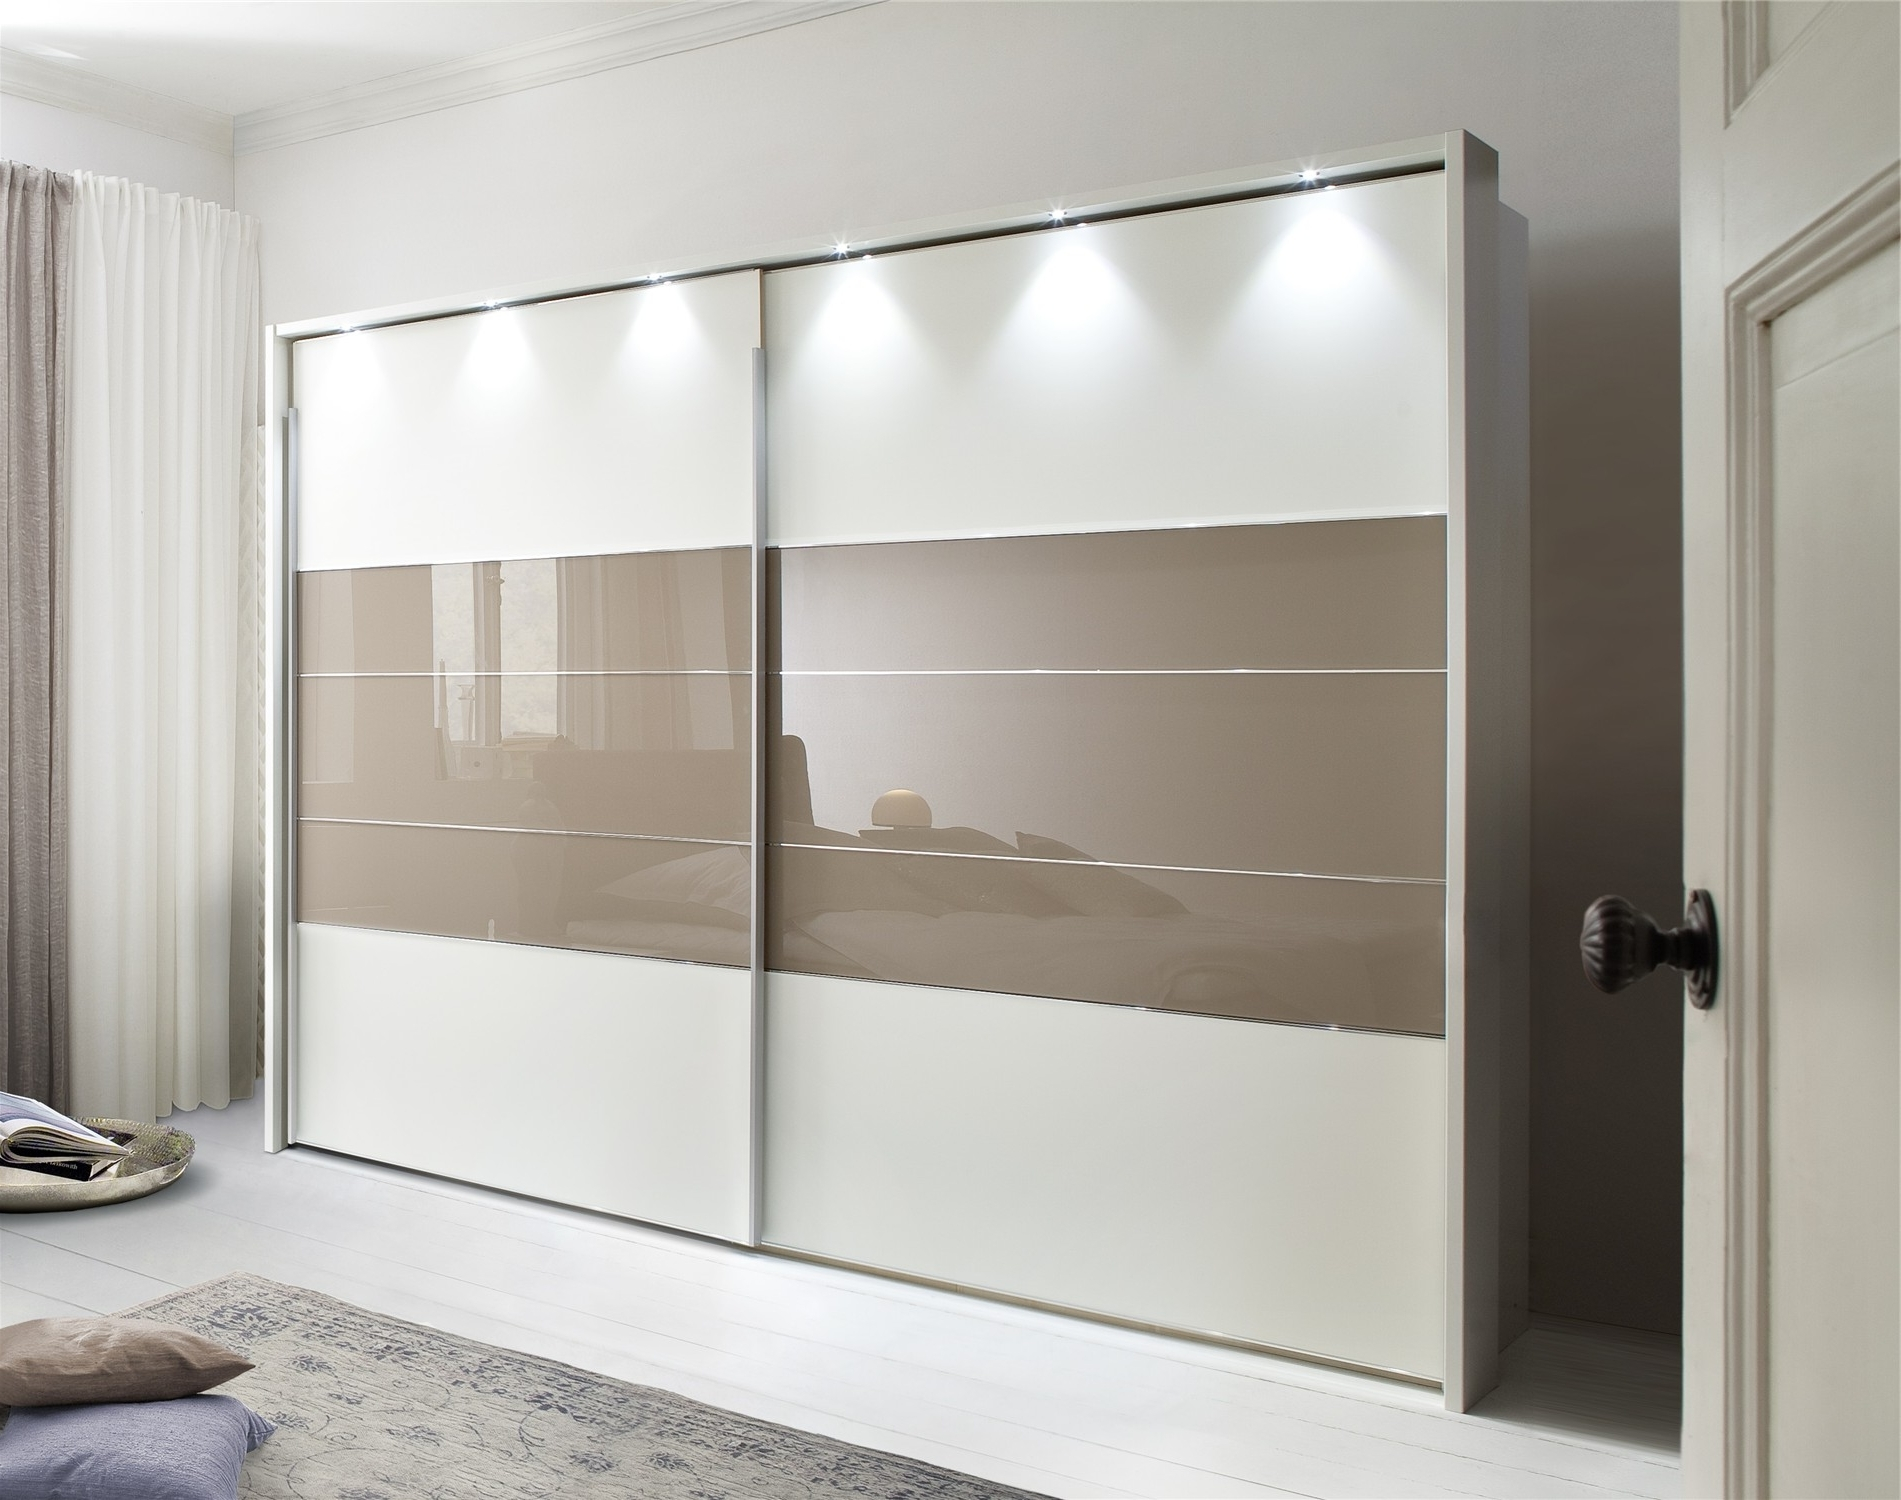 Mirror Design Ideas: Wood Glass Wardrobe With Mirror Sliding Doors Inside Latest Dark Wood Wardrobes With Sliding Doors (View 11 of 15)